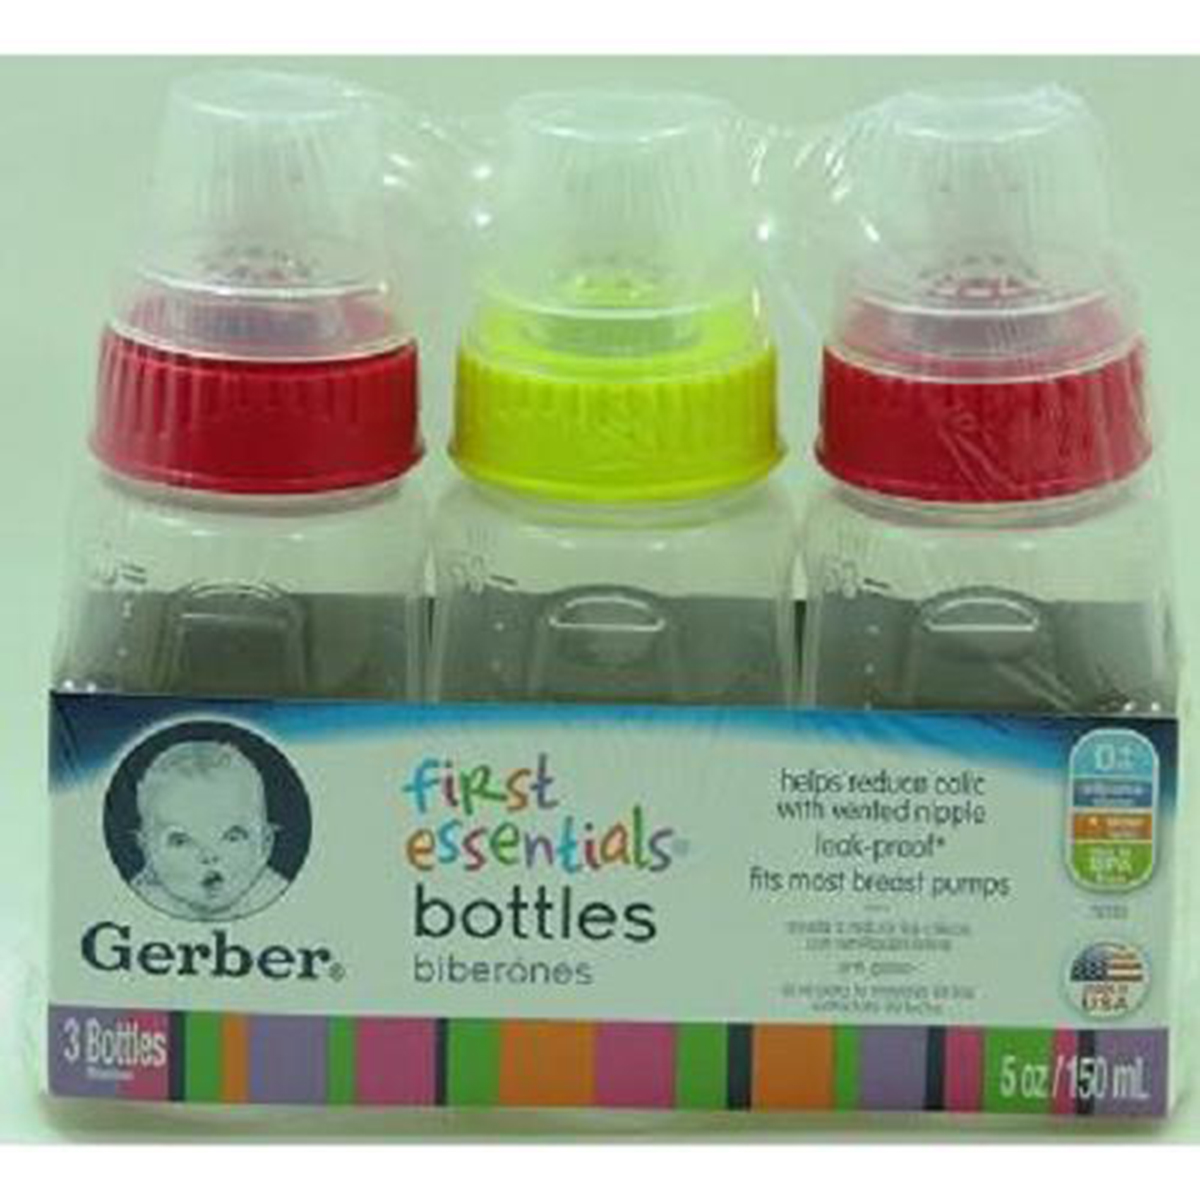 Product Of Gerber, Feeding Bottle With Latex Nipple (Clear), Count 1 (5 oz) Baby Care Accessories   Grab... by Product Of Gerber